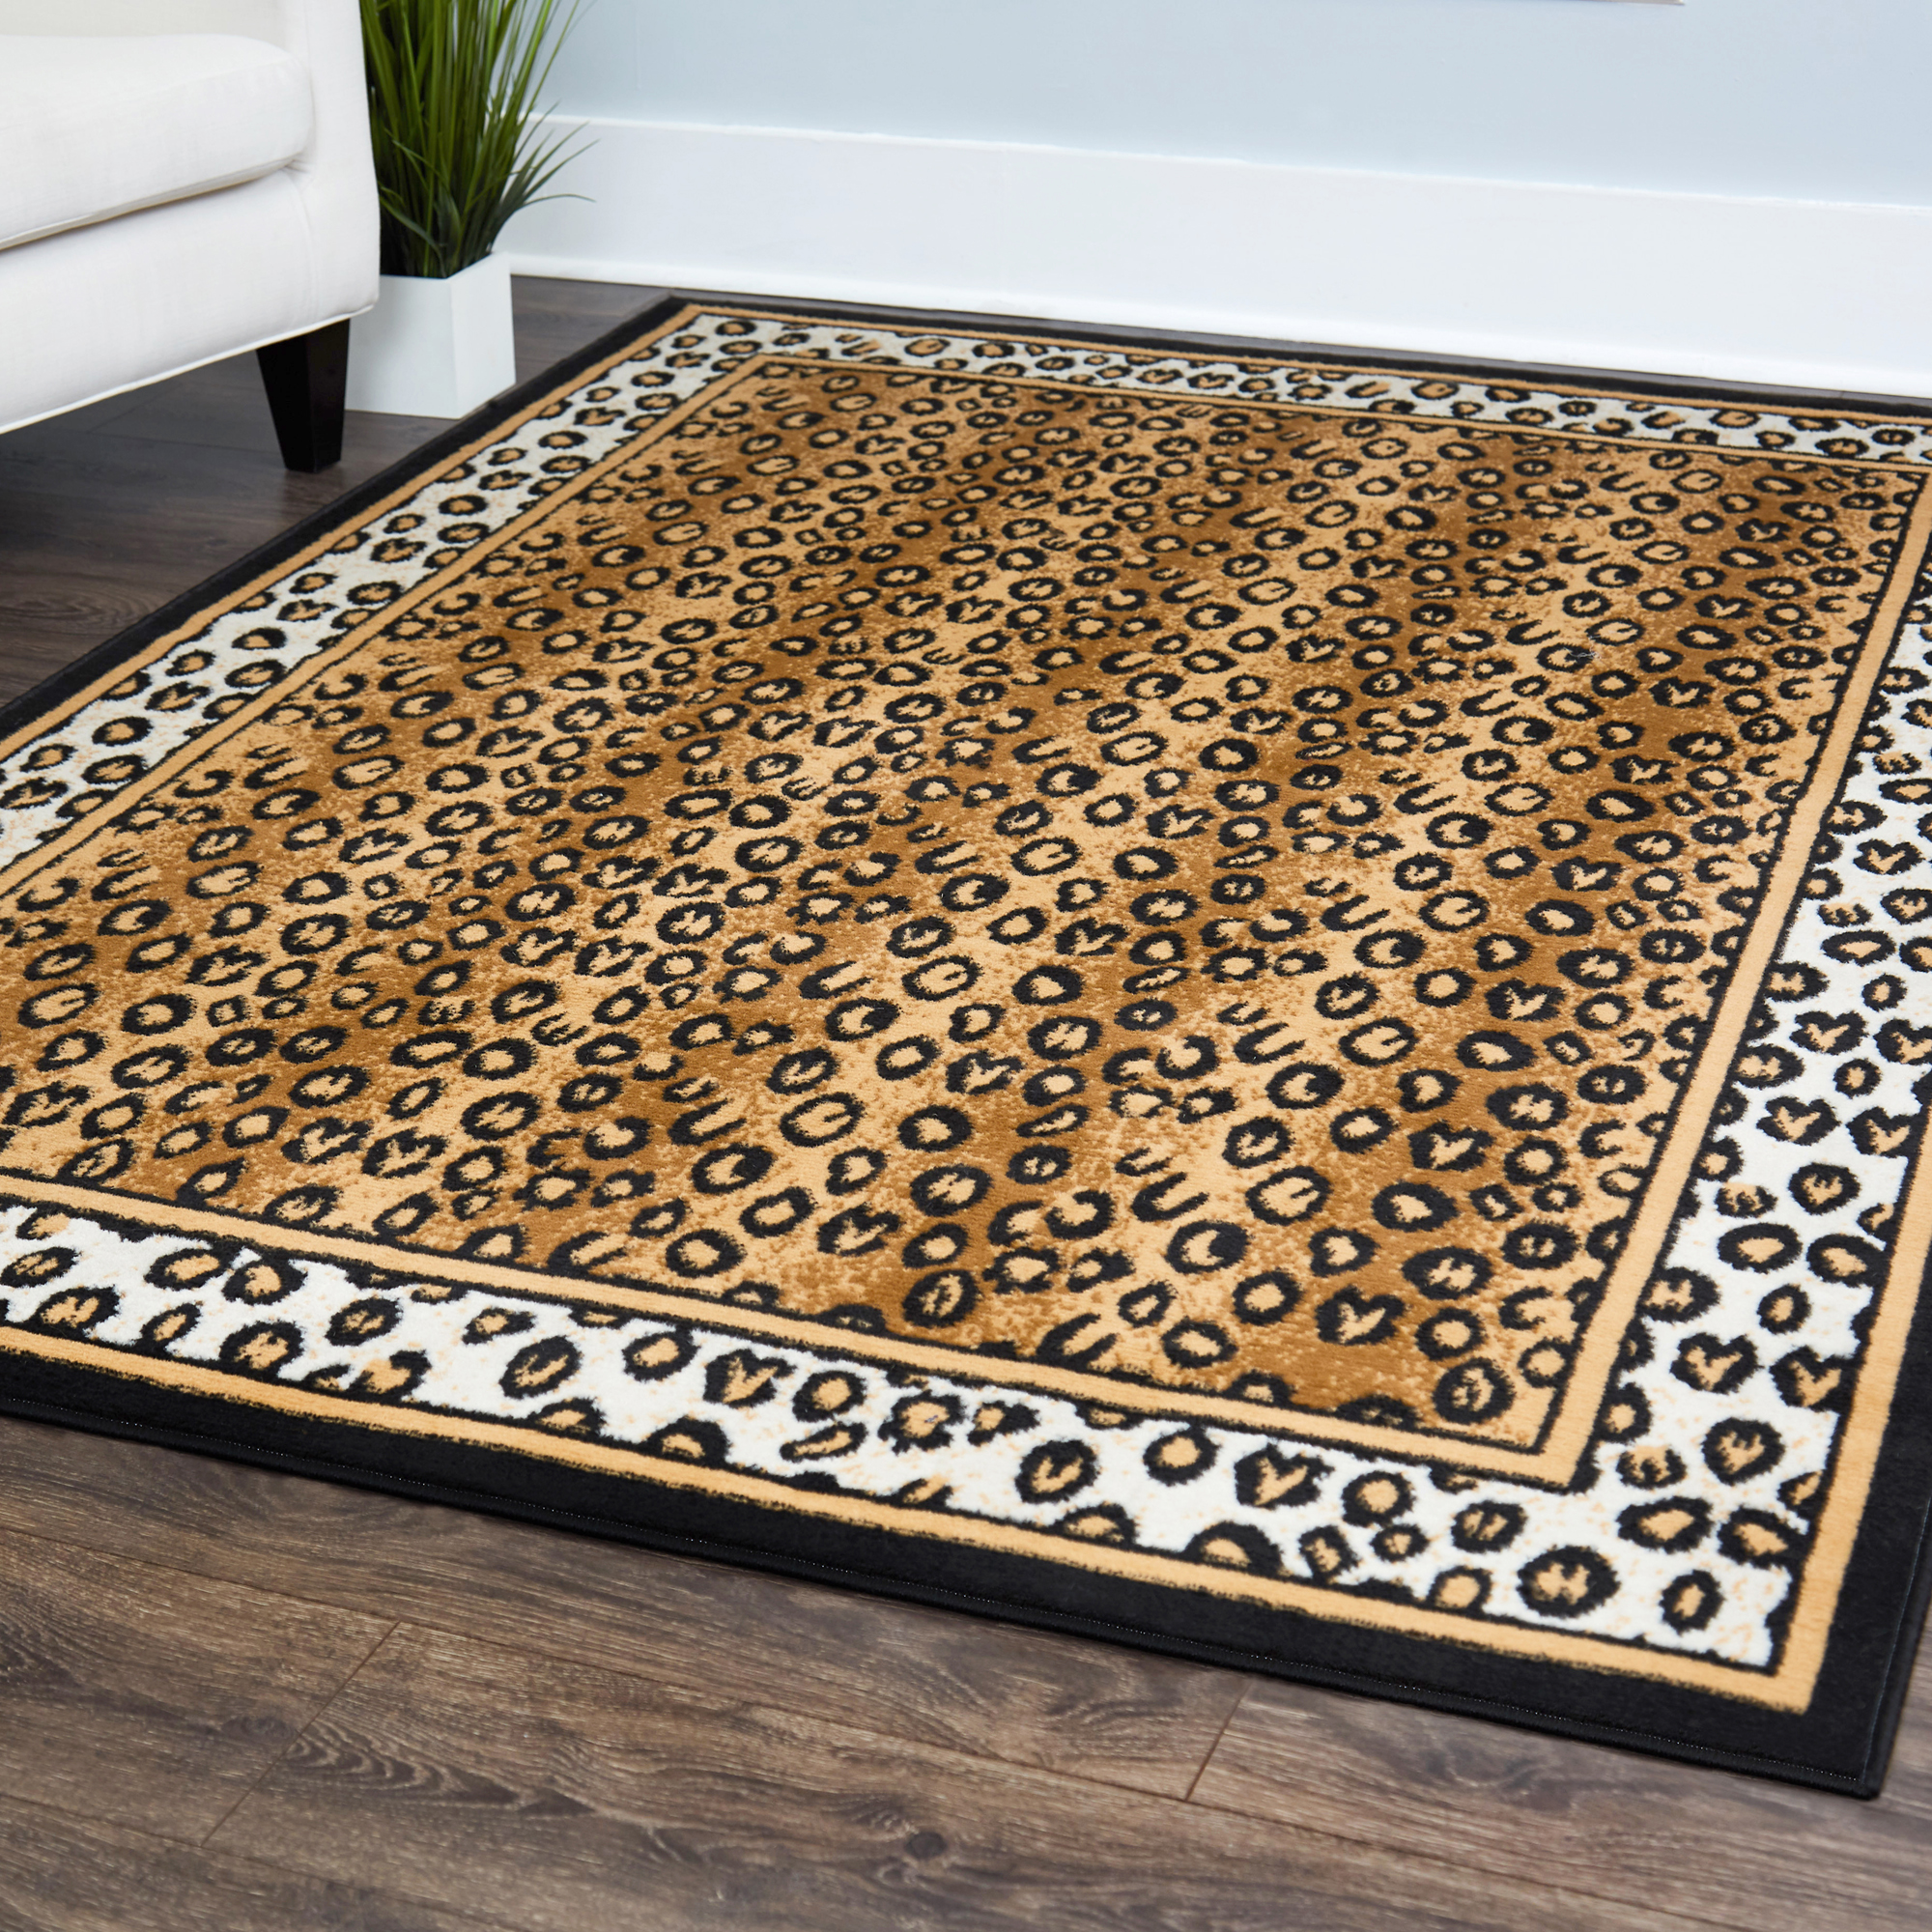 Details About Contemporary Leopard Skin Animal Print Area Rug Modern Bordered African Carpet